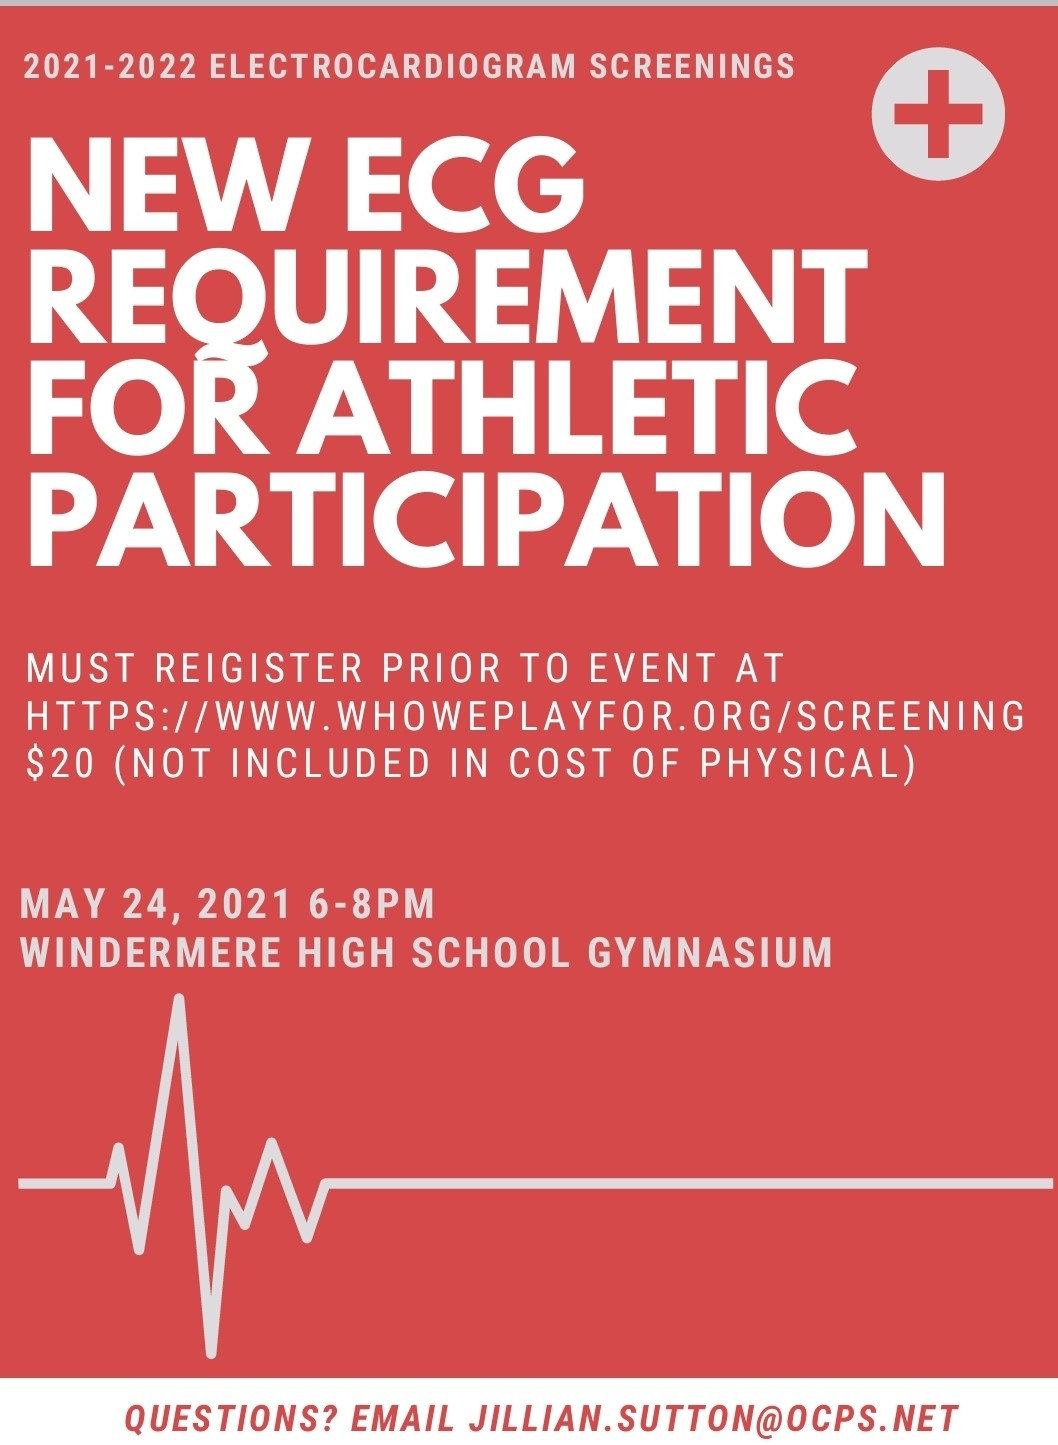 Athletic Physicals & ECG's May 24th